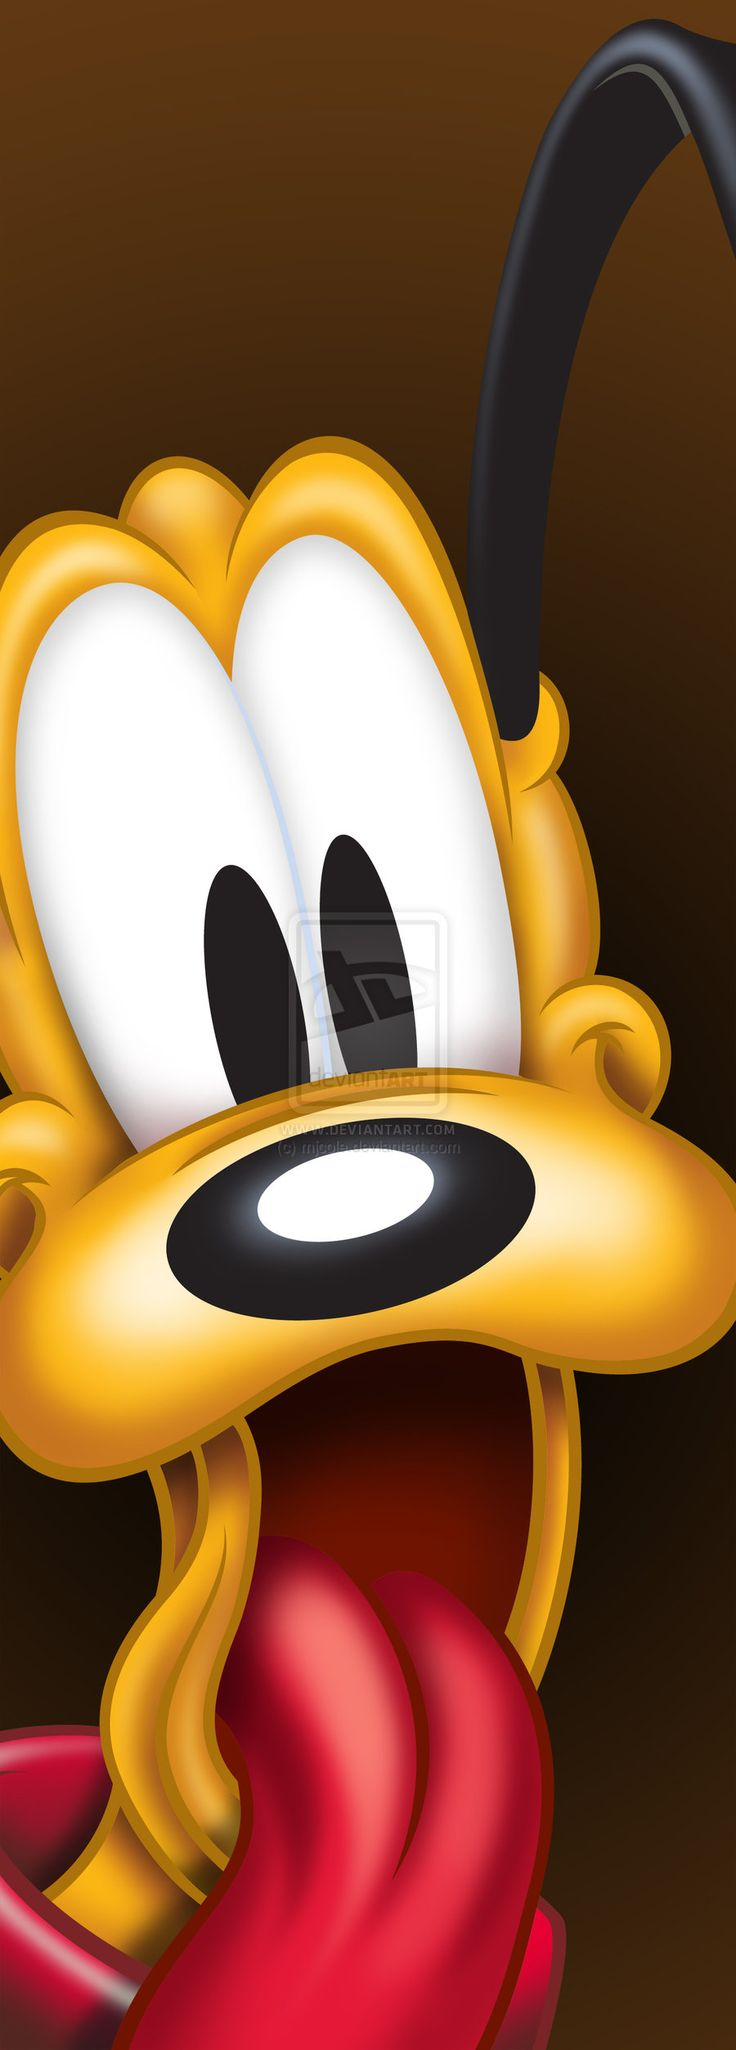 Pluto is happy about something or someone!